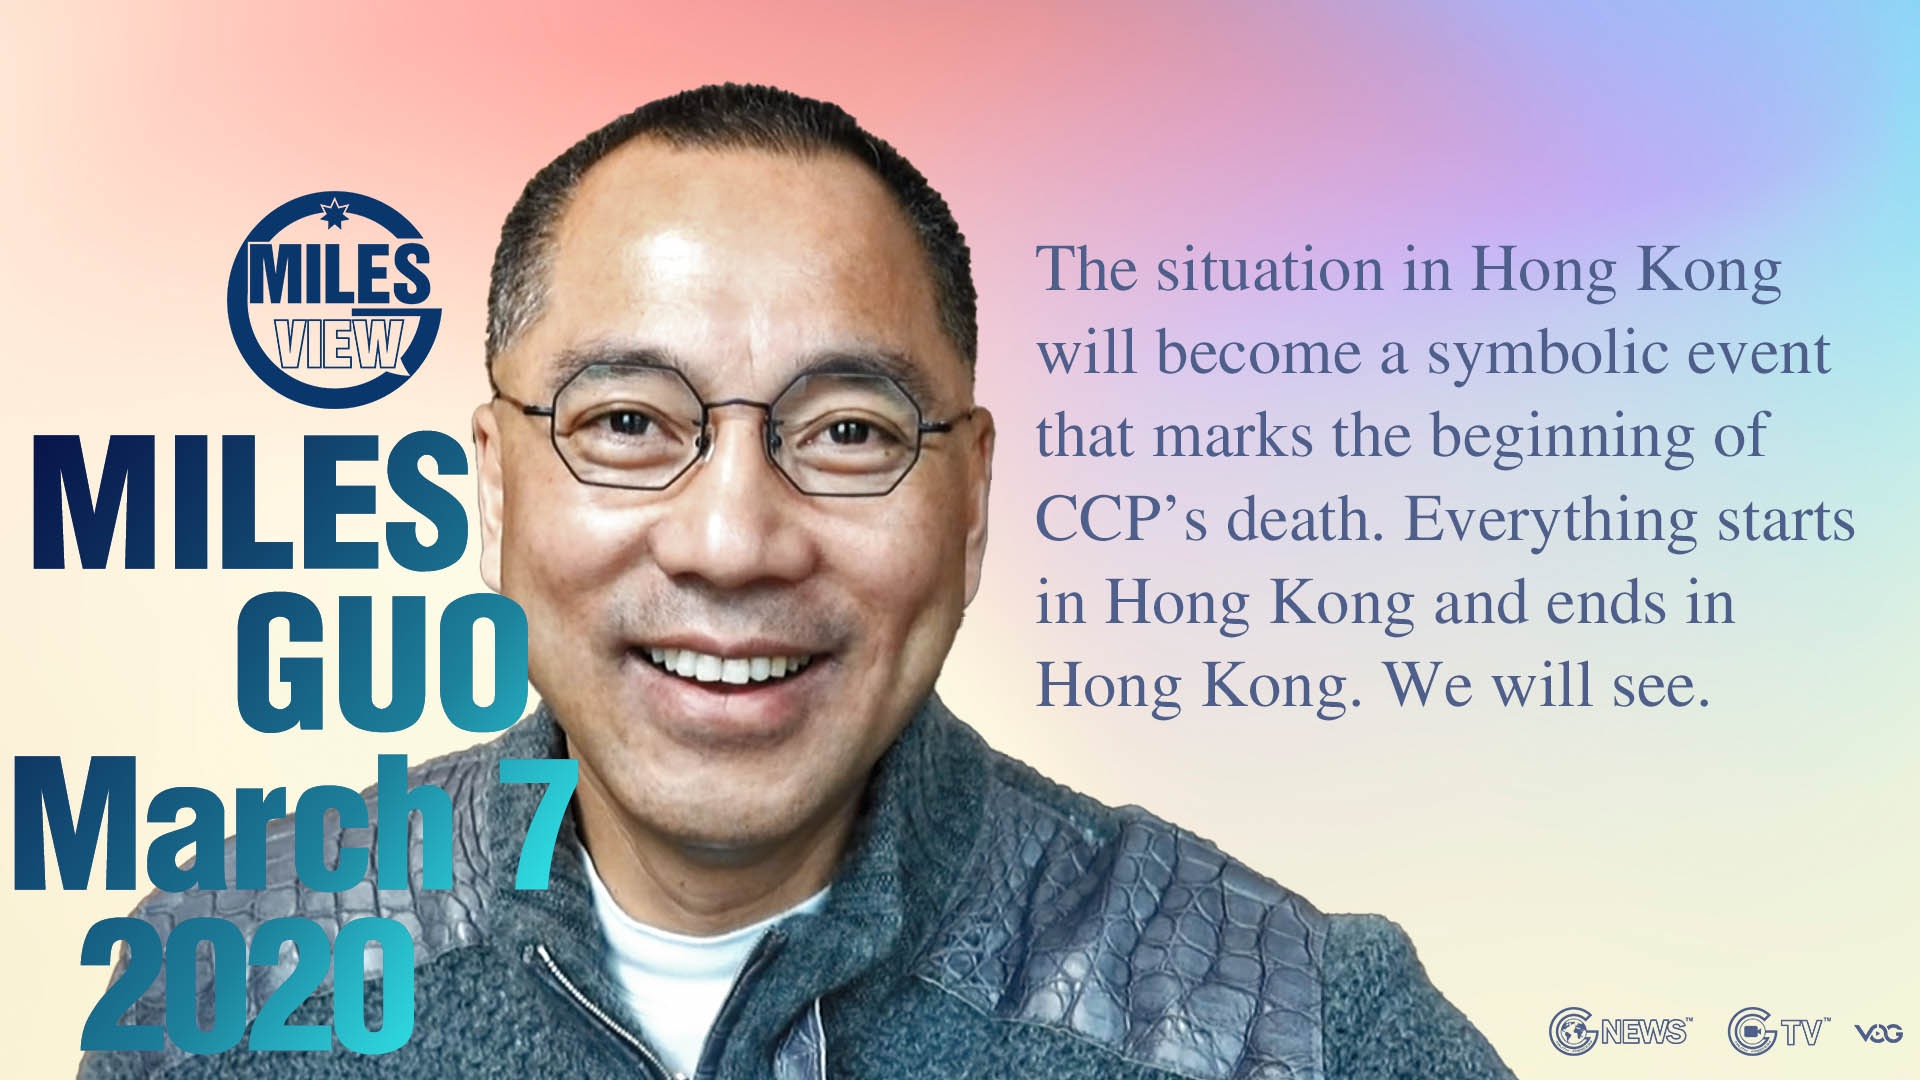 With Hong Kong's special status canceled, how long can CCP survive?